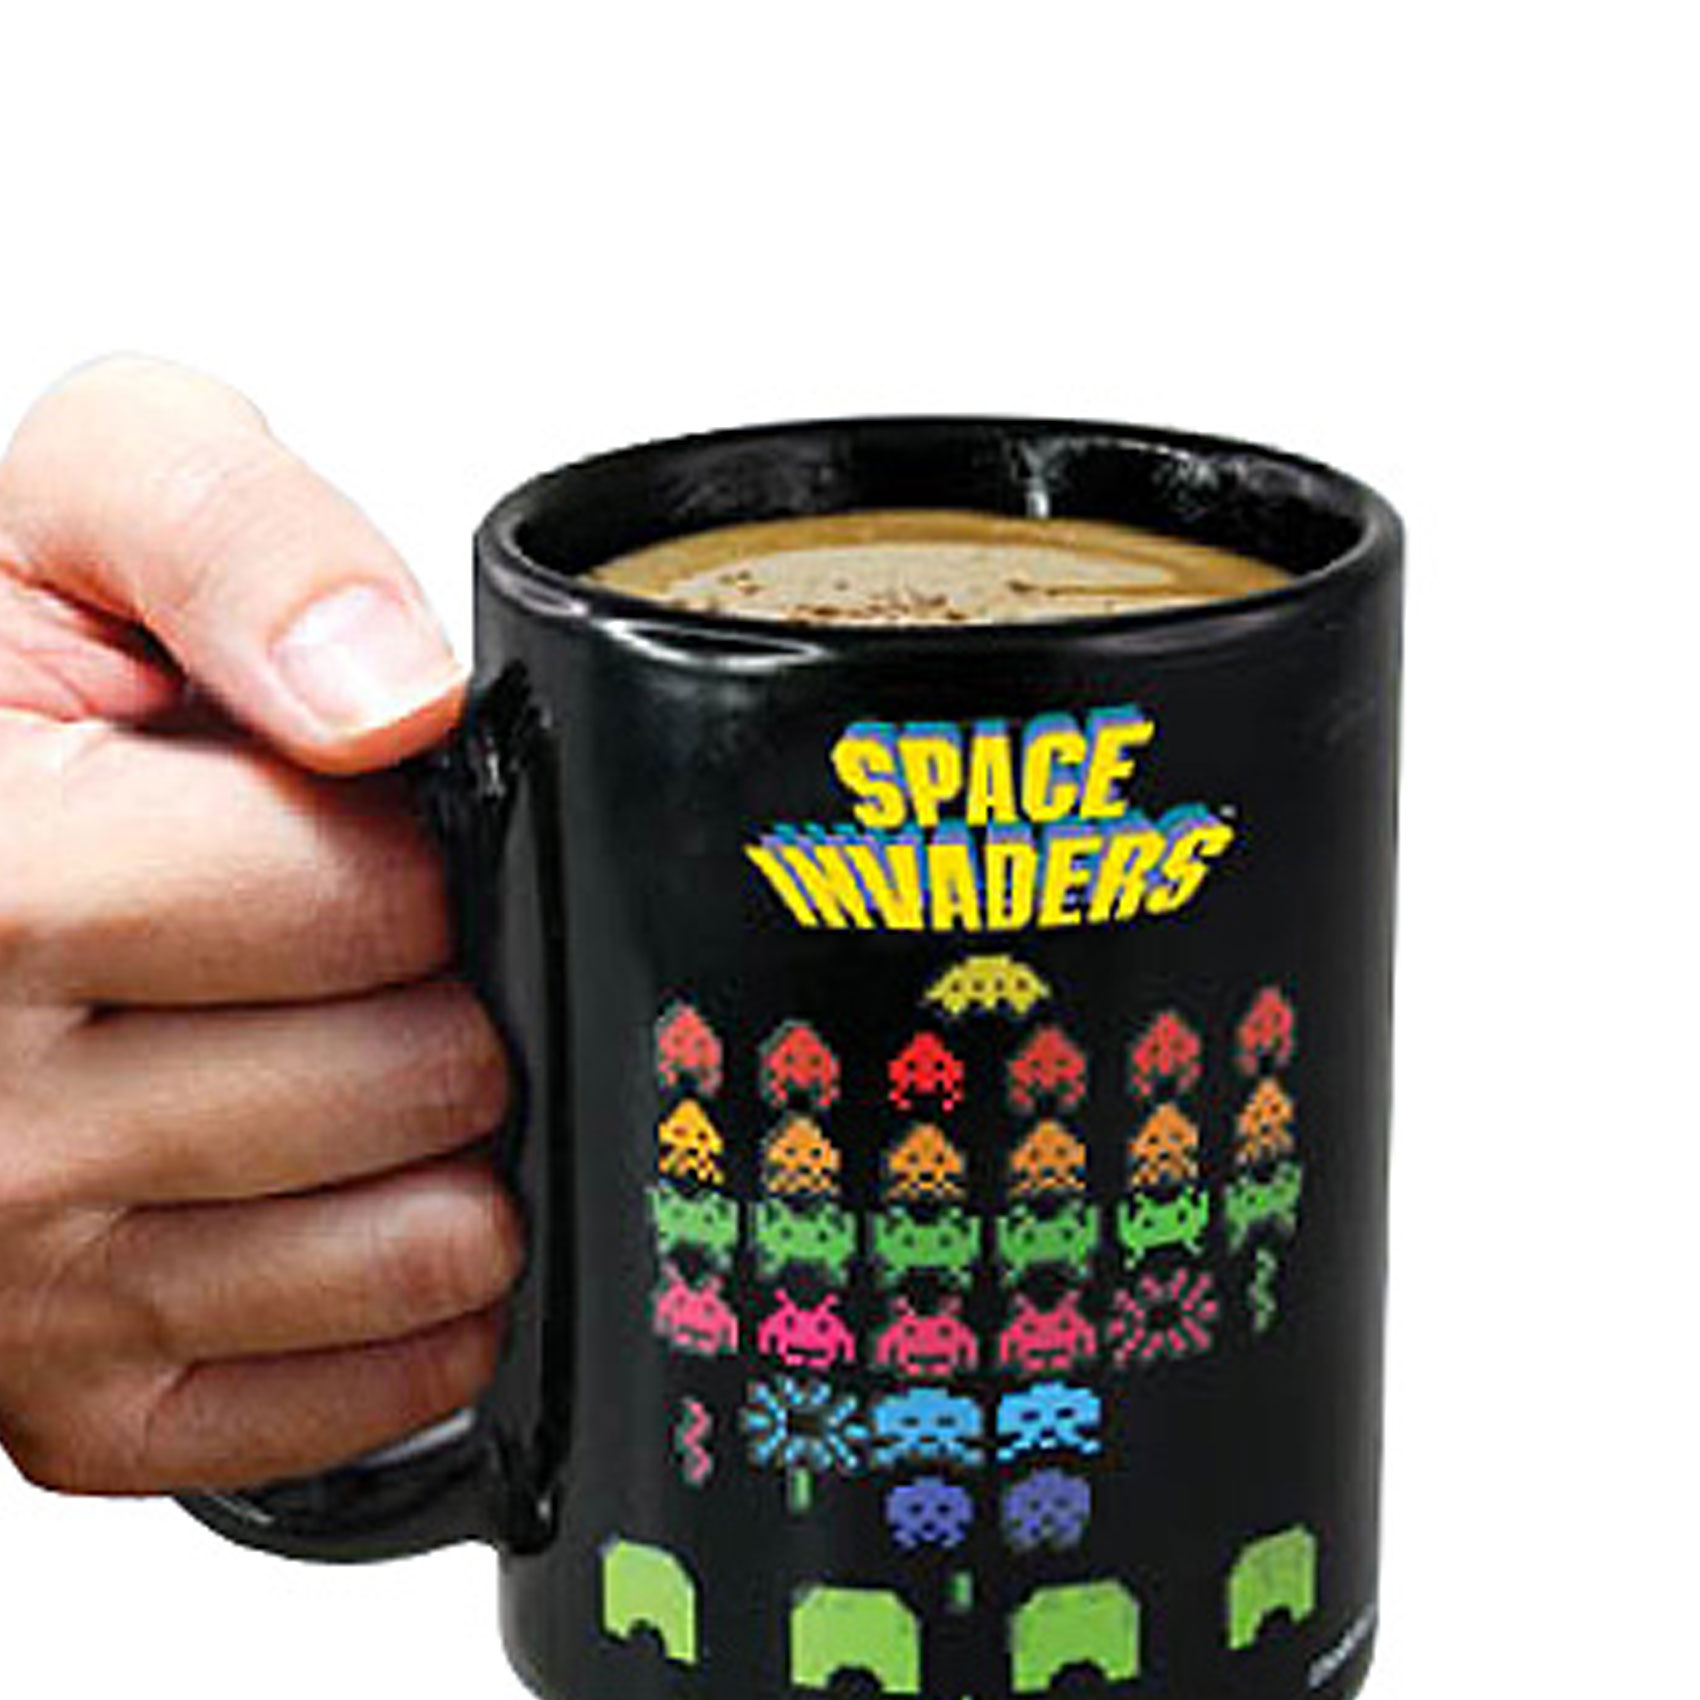 Space Invaders Heat Sensitive Color Changing Mug - Black